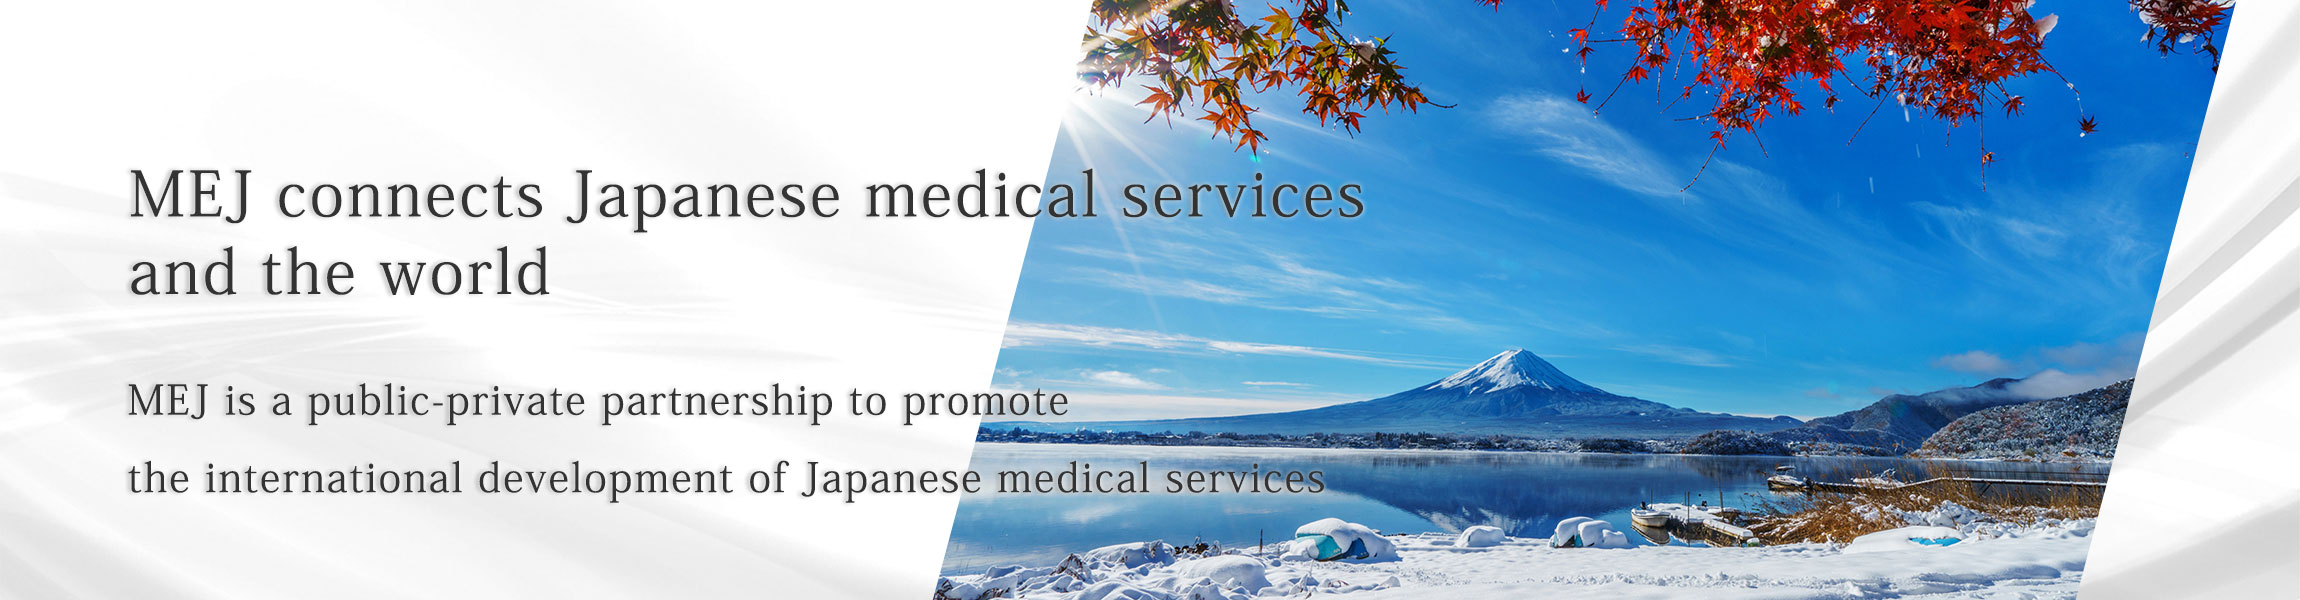 MEJ connects Japanese medical services and the world